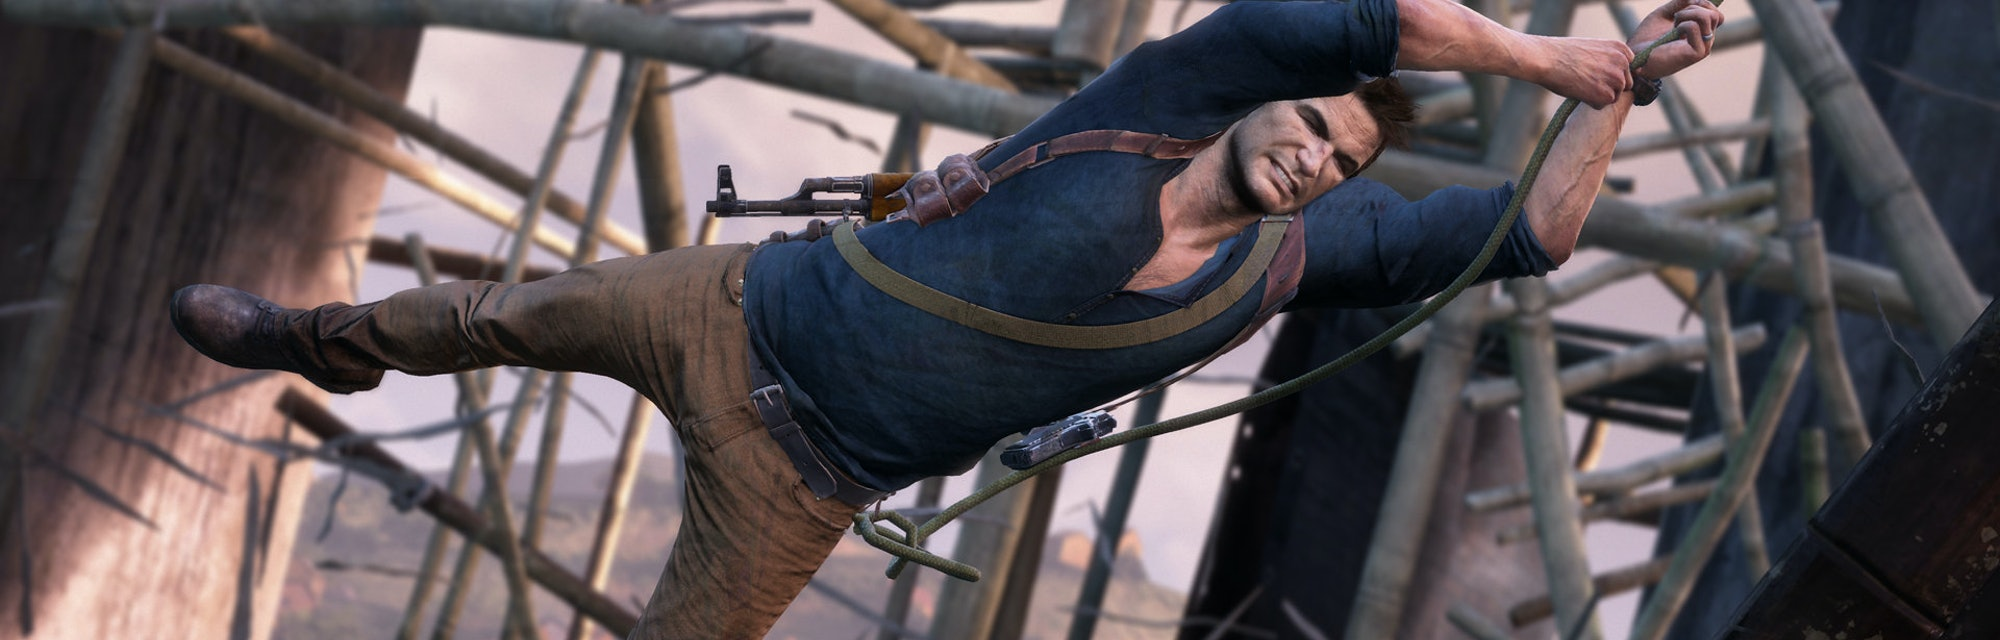 Uncharted 5 Ps5 Release Date Rumors Pick Up Steam After Actor Tease